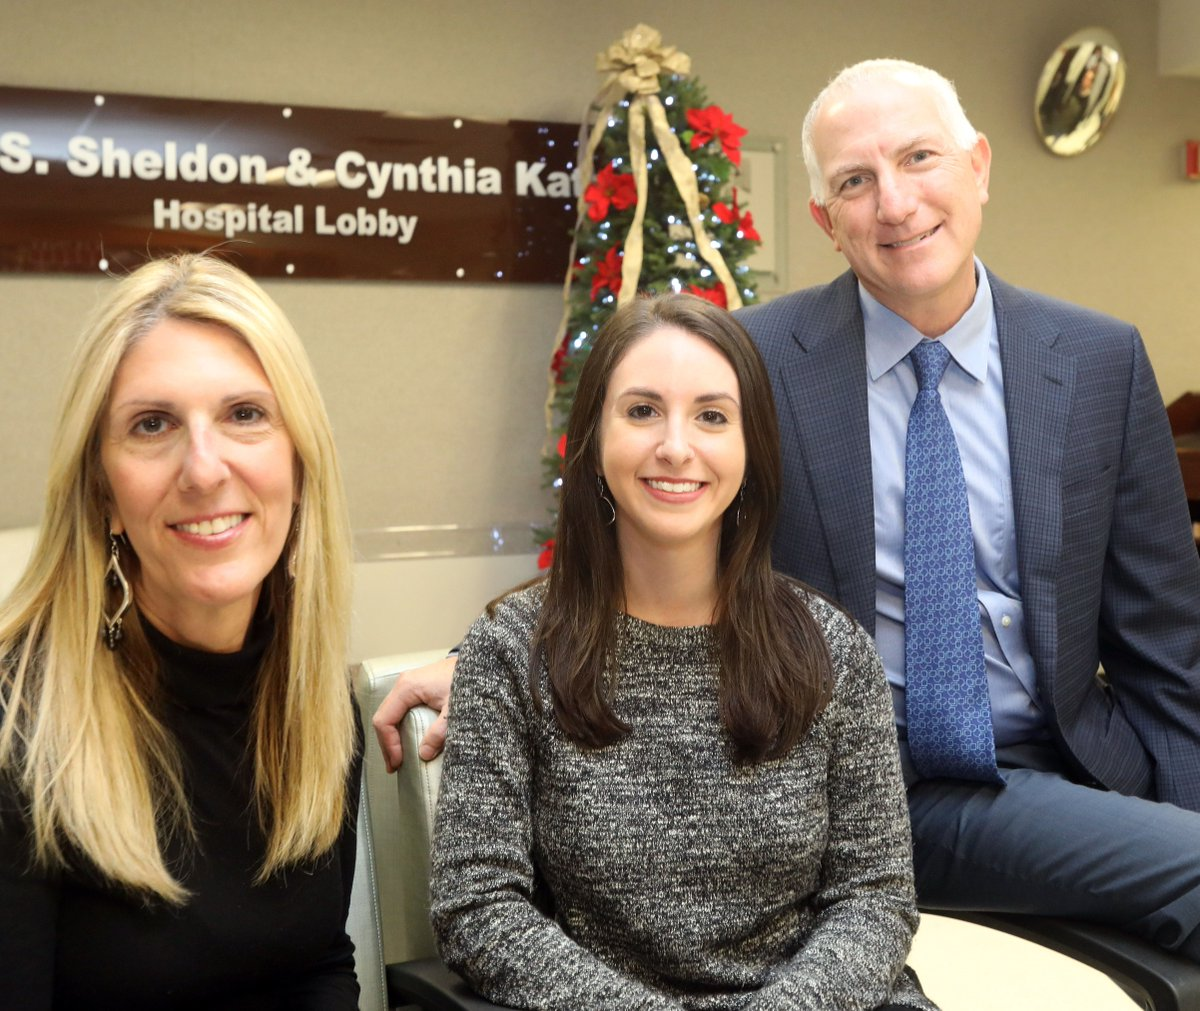 Diane Dinsmore, left, of Fishkill, New York; her daughter Kerri Dinsmore of Hastings-on-Hudson, New York; and Dr. Jeffrey Oppenheim of Piermont, New York, get together for a photo Dec. 12, 2018, at Nyack Hospita nearly 20 years after Oppenheim on Christmas Day 1998 performed seven hours of emergency brain surgery on a 7-year-old Kerri Dinsmore. (Photo: Carucha L. Meuse, The (Westchester County, N.Y.) Journal News)